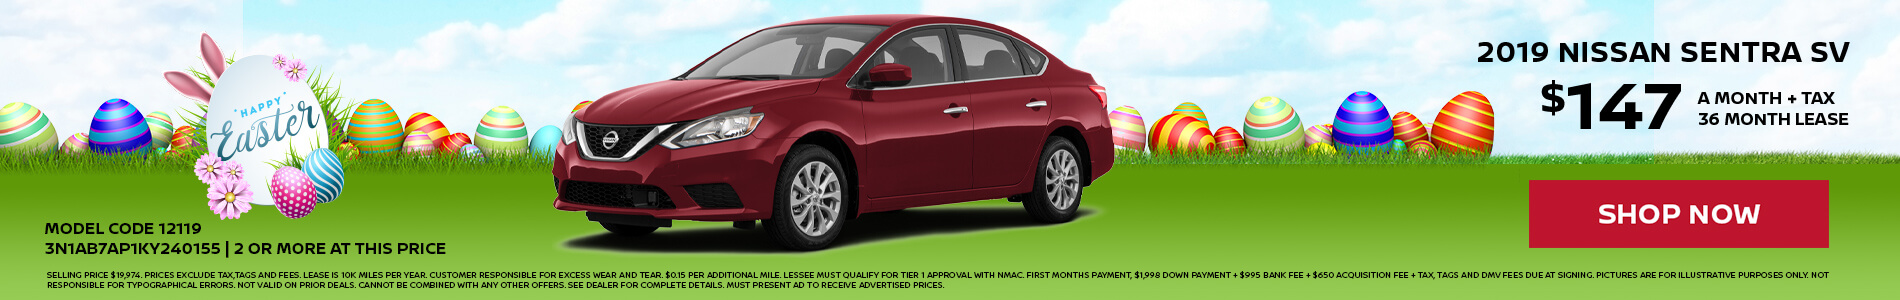 Nissan Sentra $147 Lease